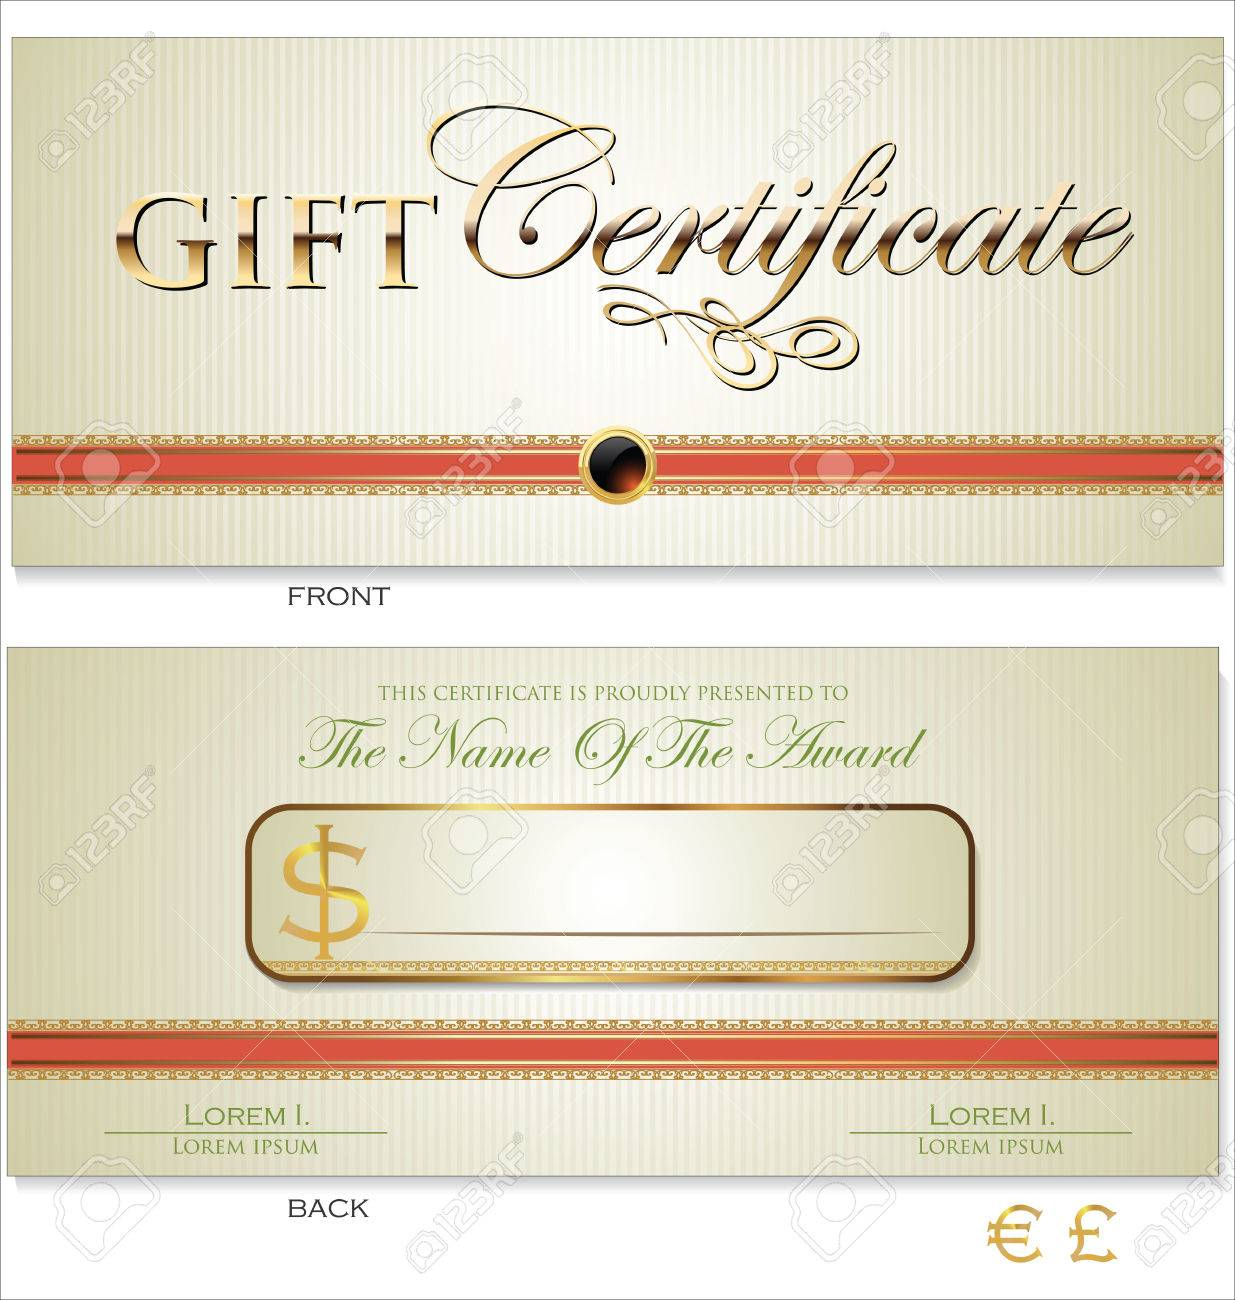 voucher gift certificate coupon template royalty cliparts voucher gift certificate coupon template stock vector 25041118